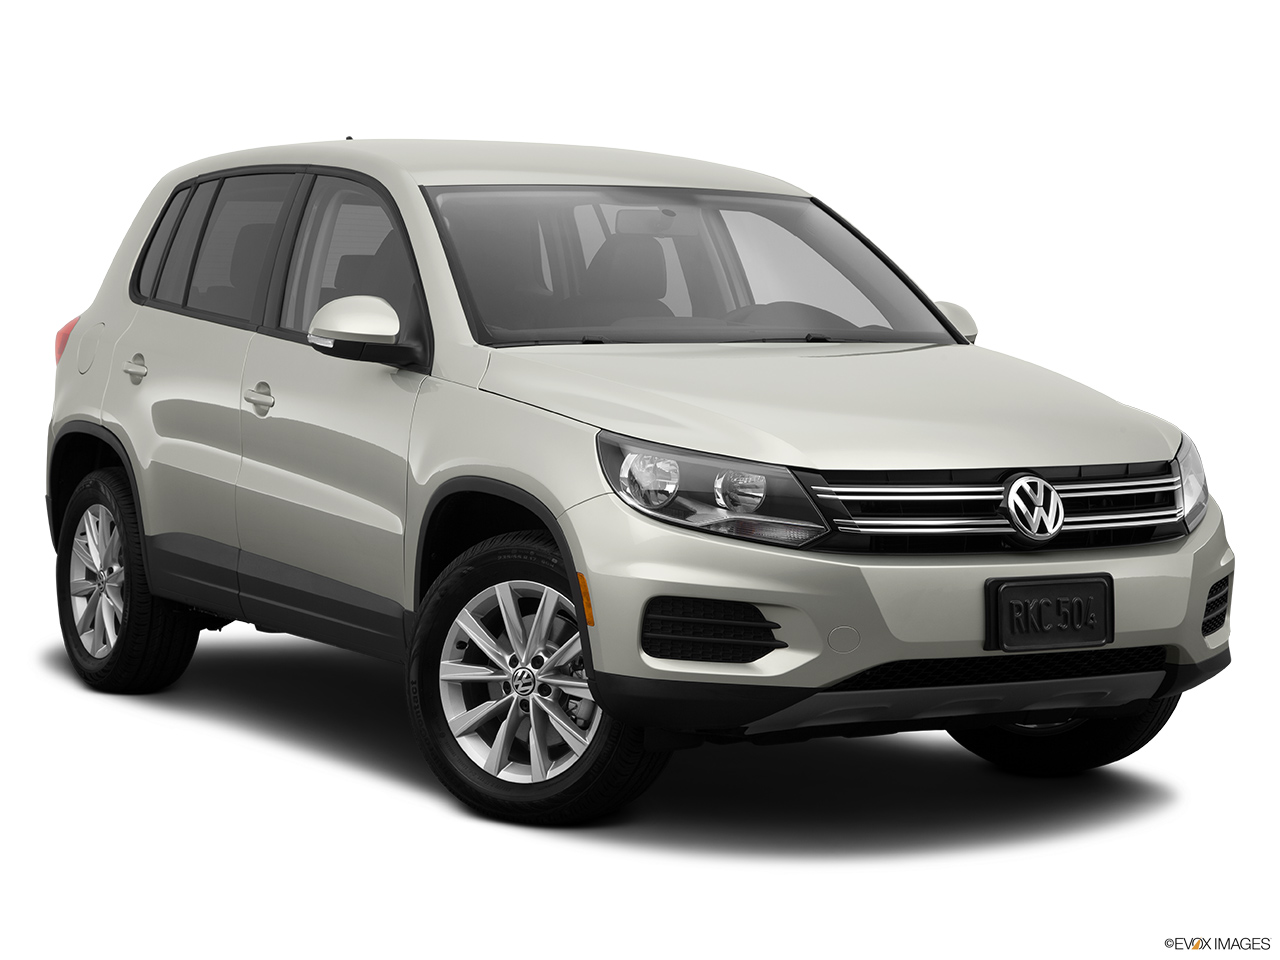 2014 volkswagen tiguan 2wd automatic r line. Black Bedroom Furniture Sets. Home Design Ideas